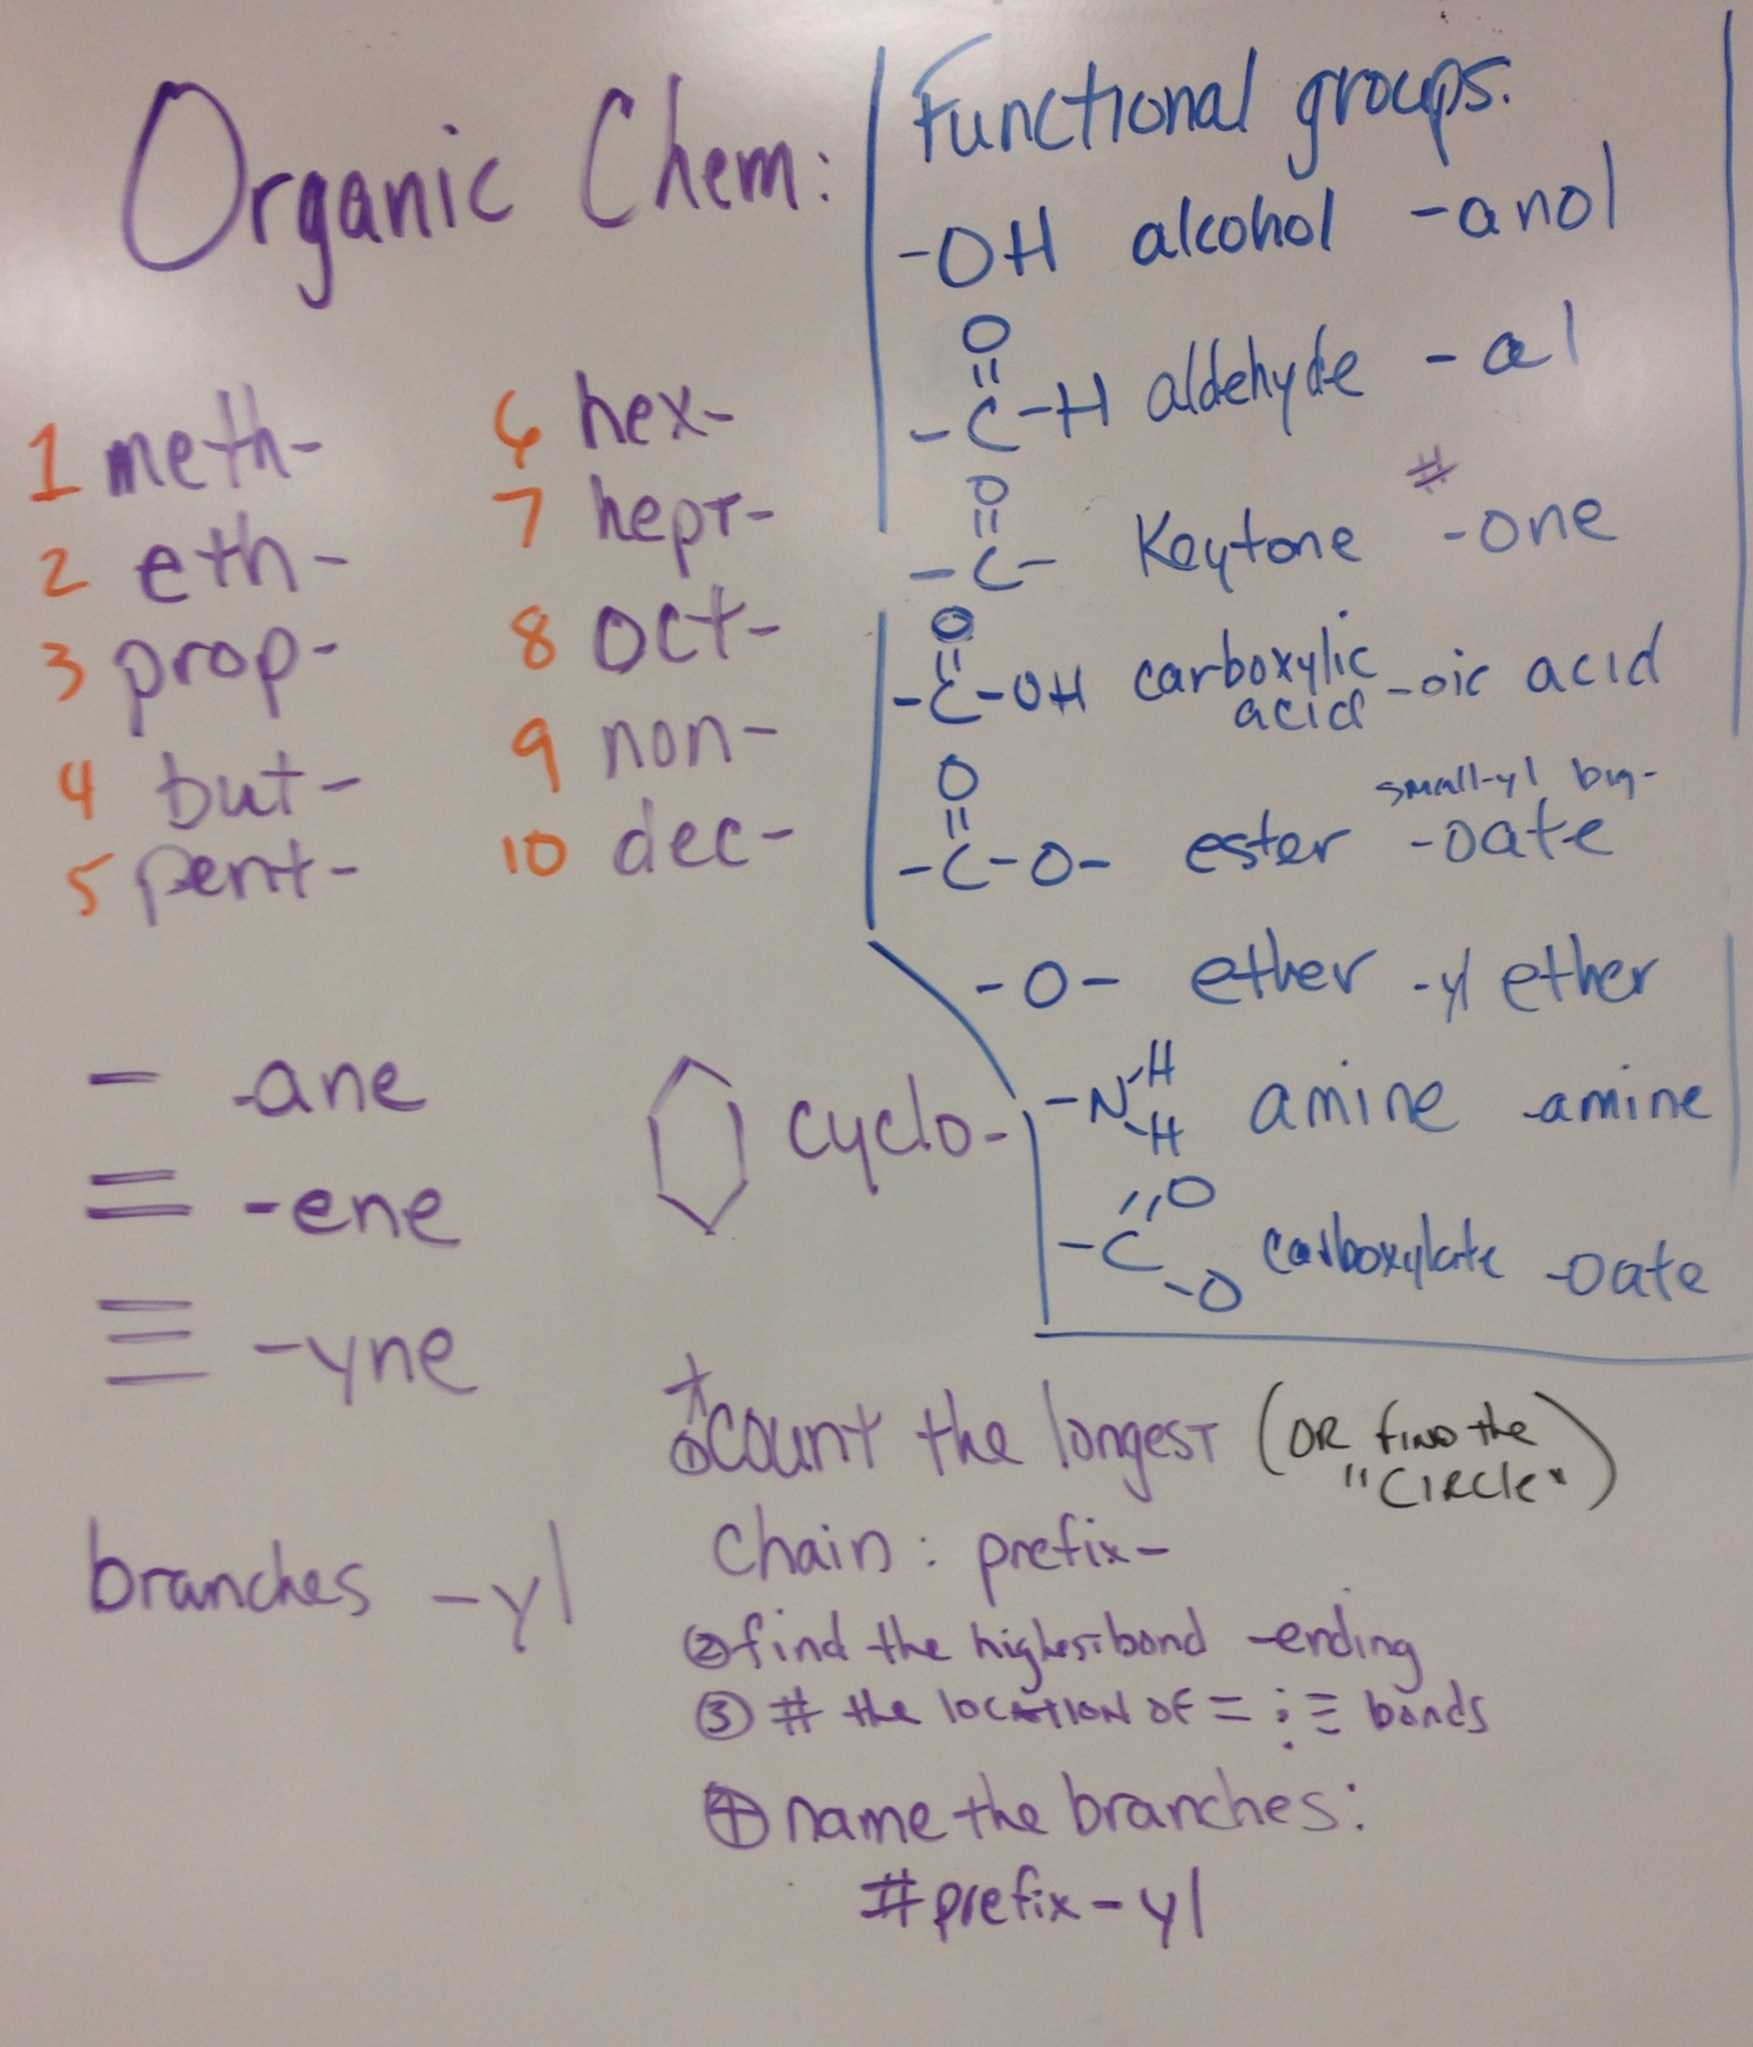 Nomenclature Worksheet 1 together with organic Chemistry Nomenclature Chart Pin organic Functional Groups